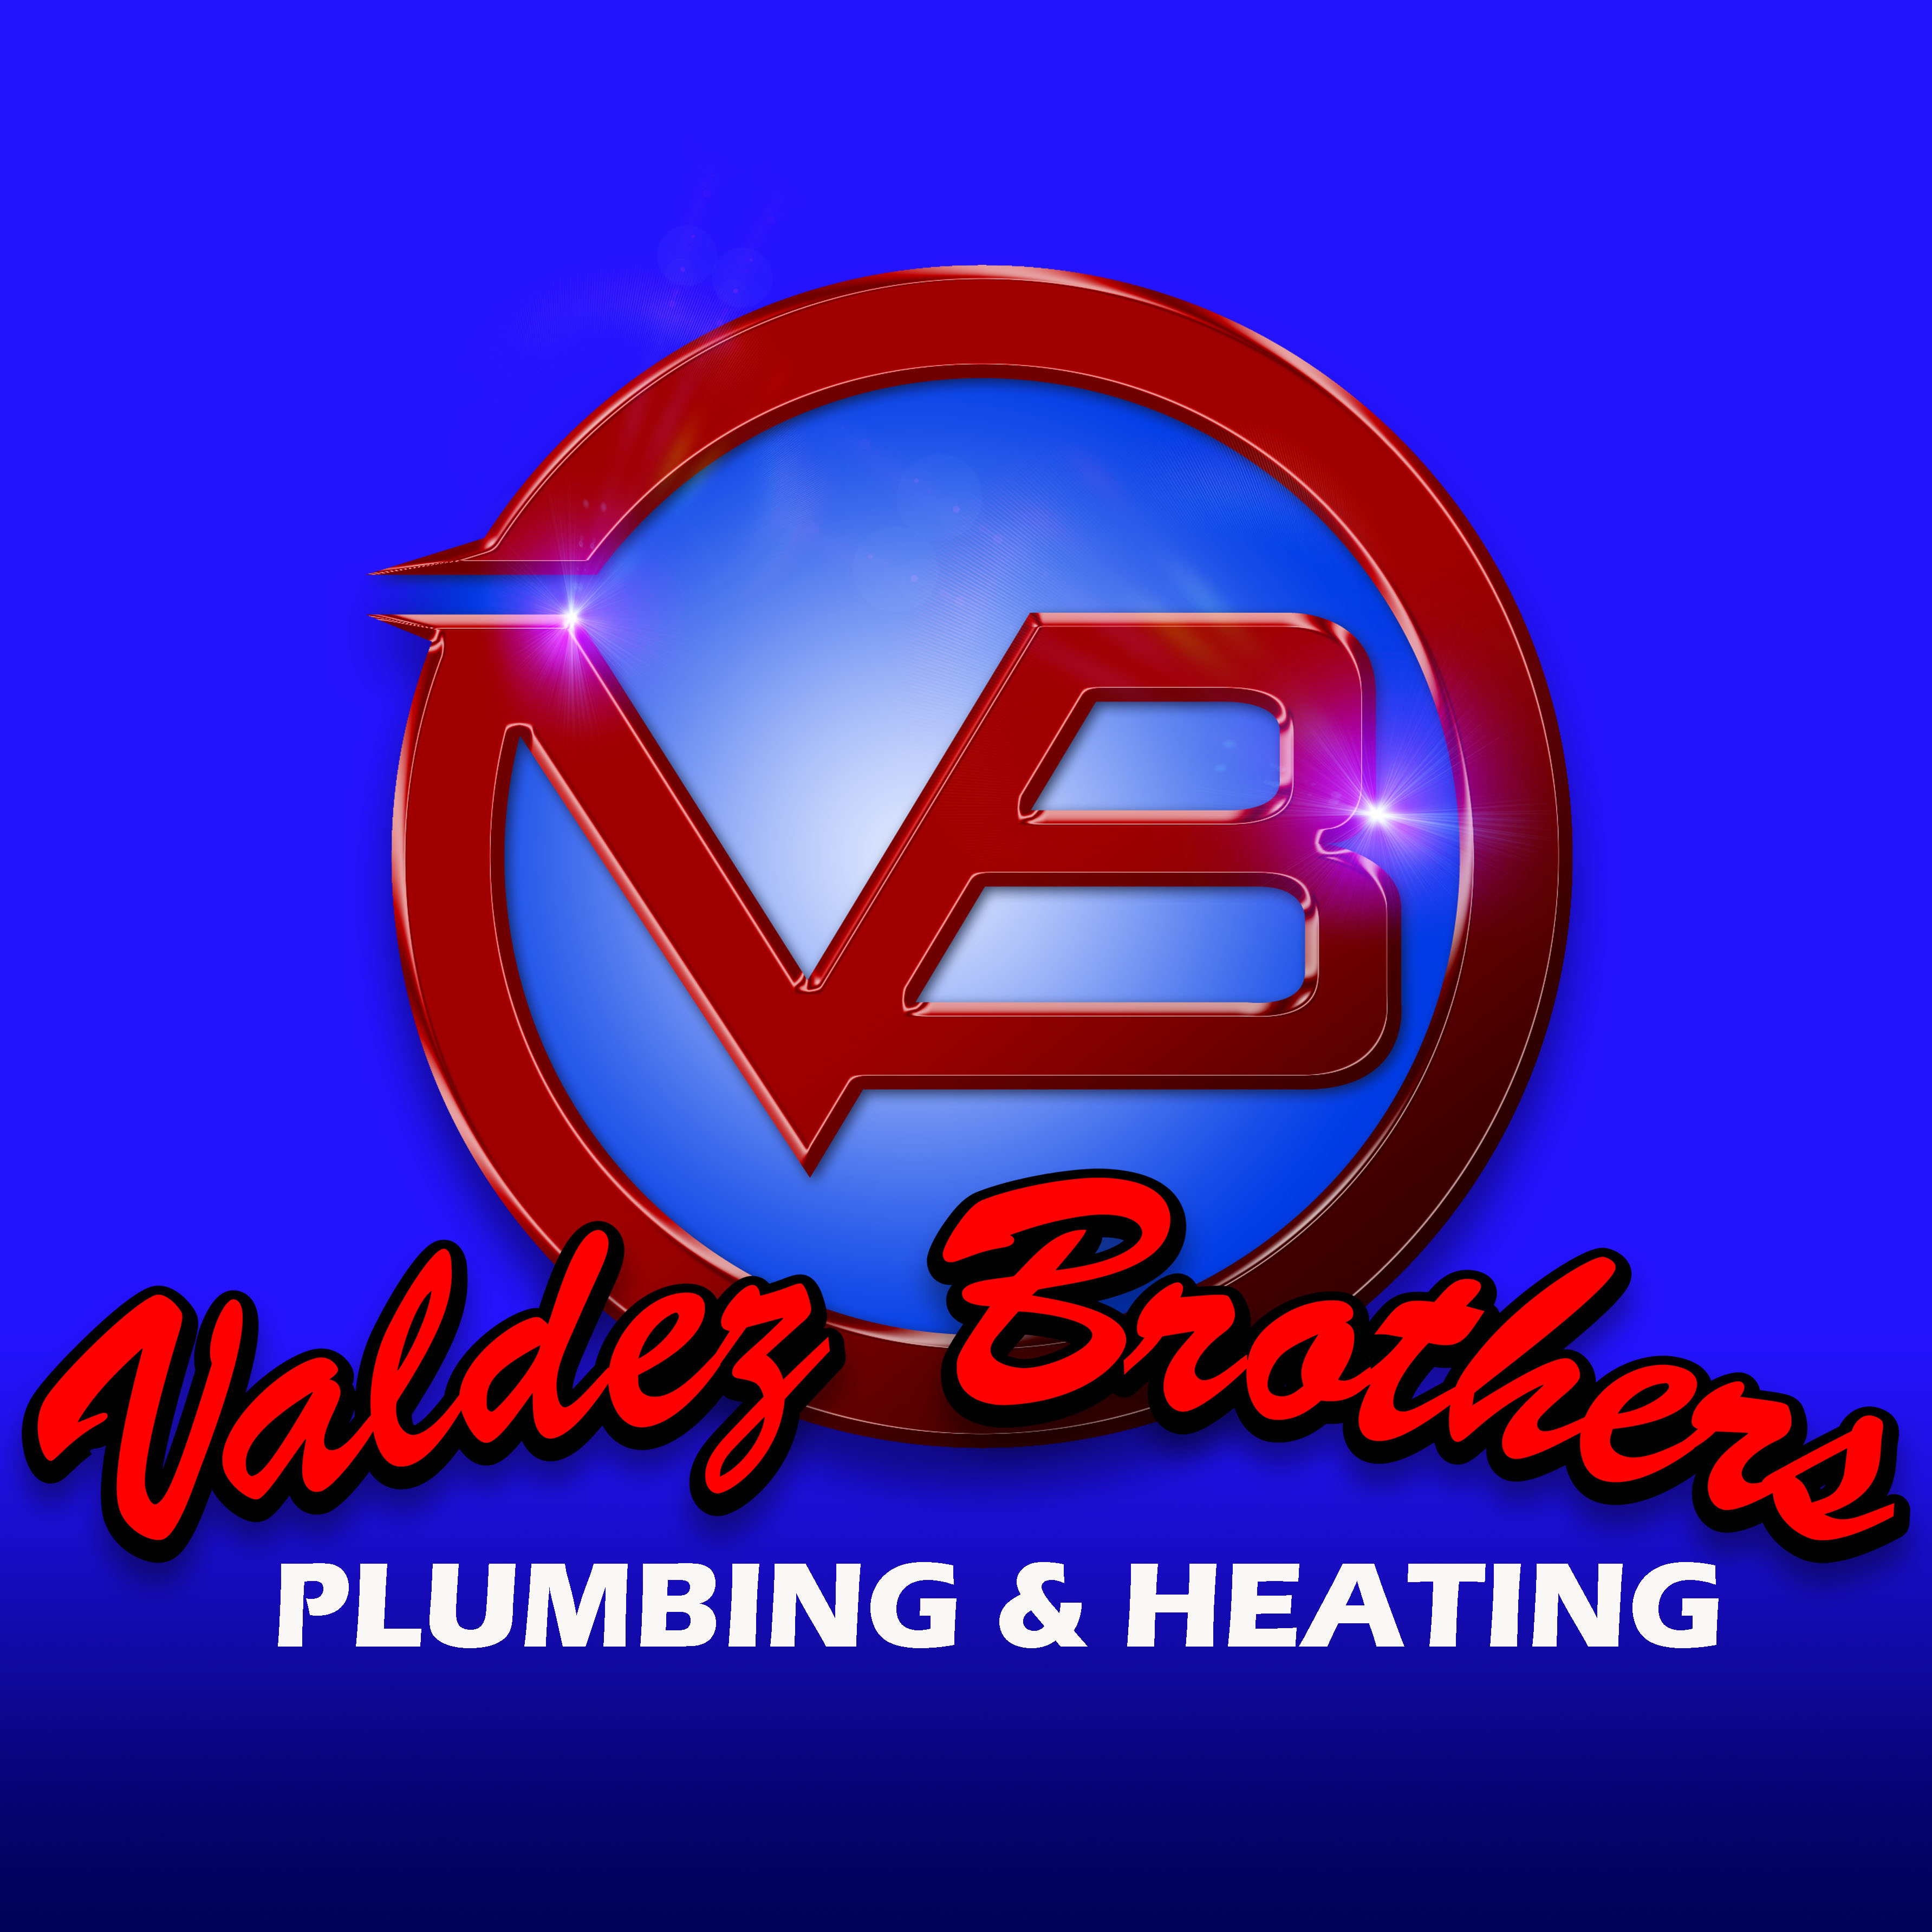 Valdez Brothers Plumbing and Re-pipe